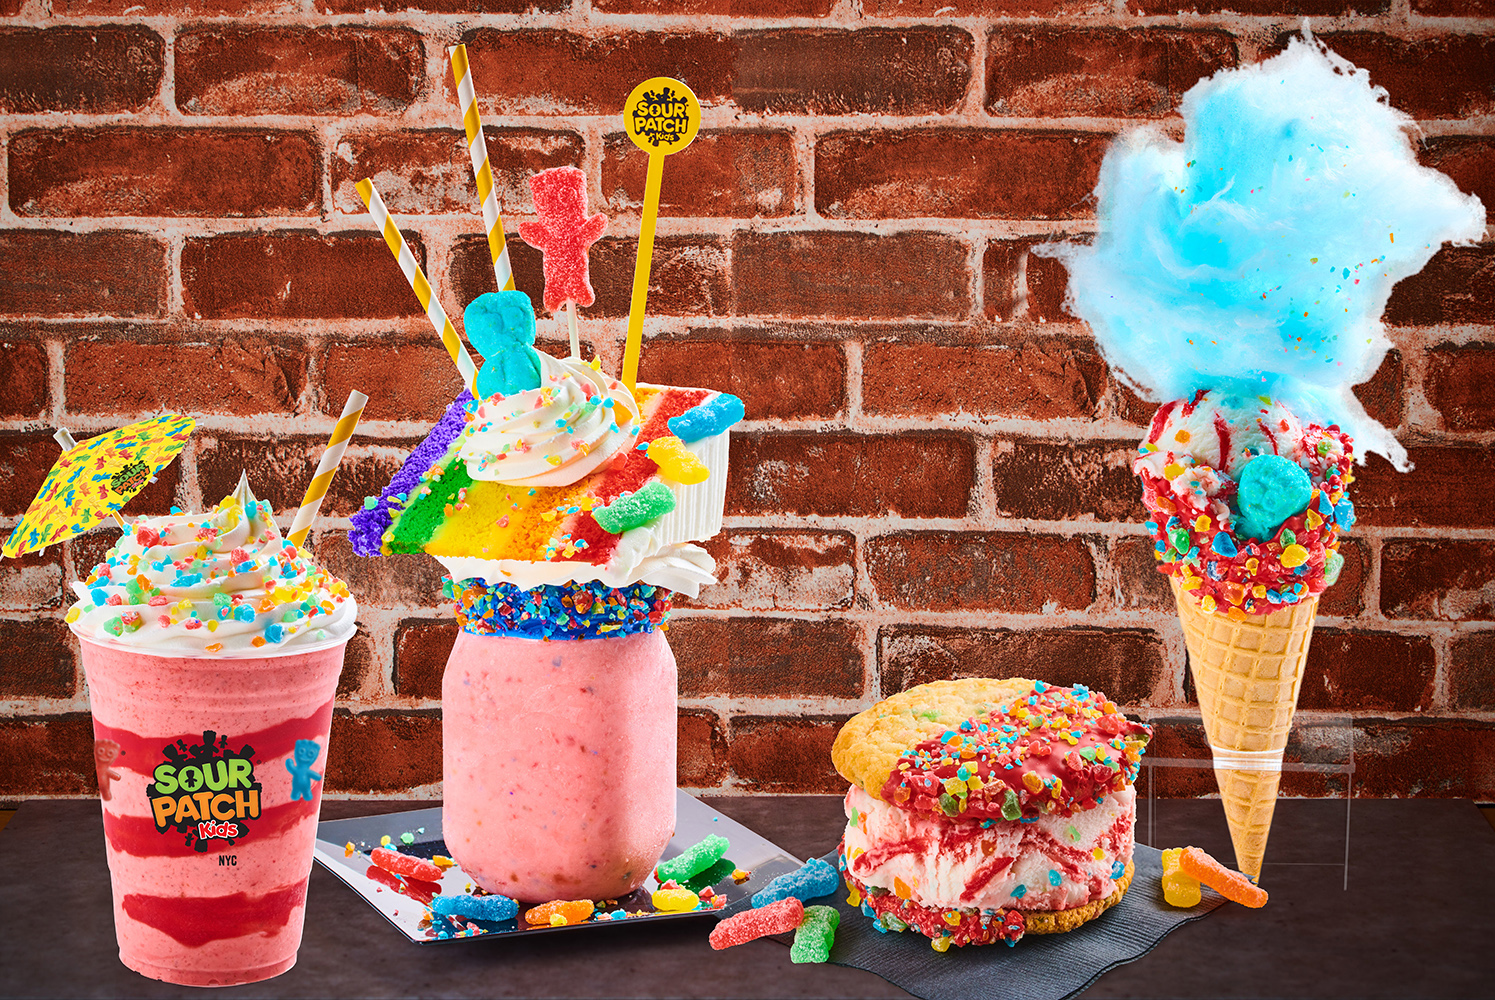 a variety of sweets including a milkshake and ice cream sandwich made with sour patch kids